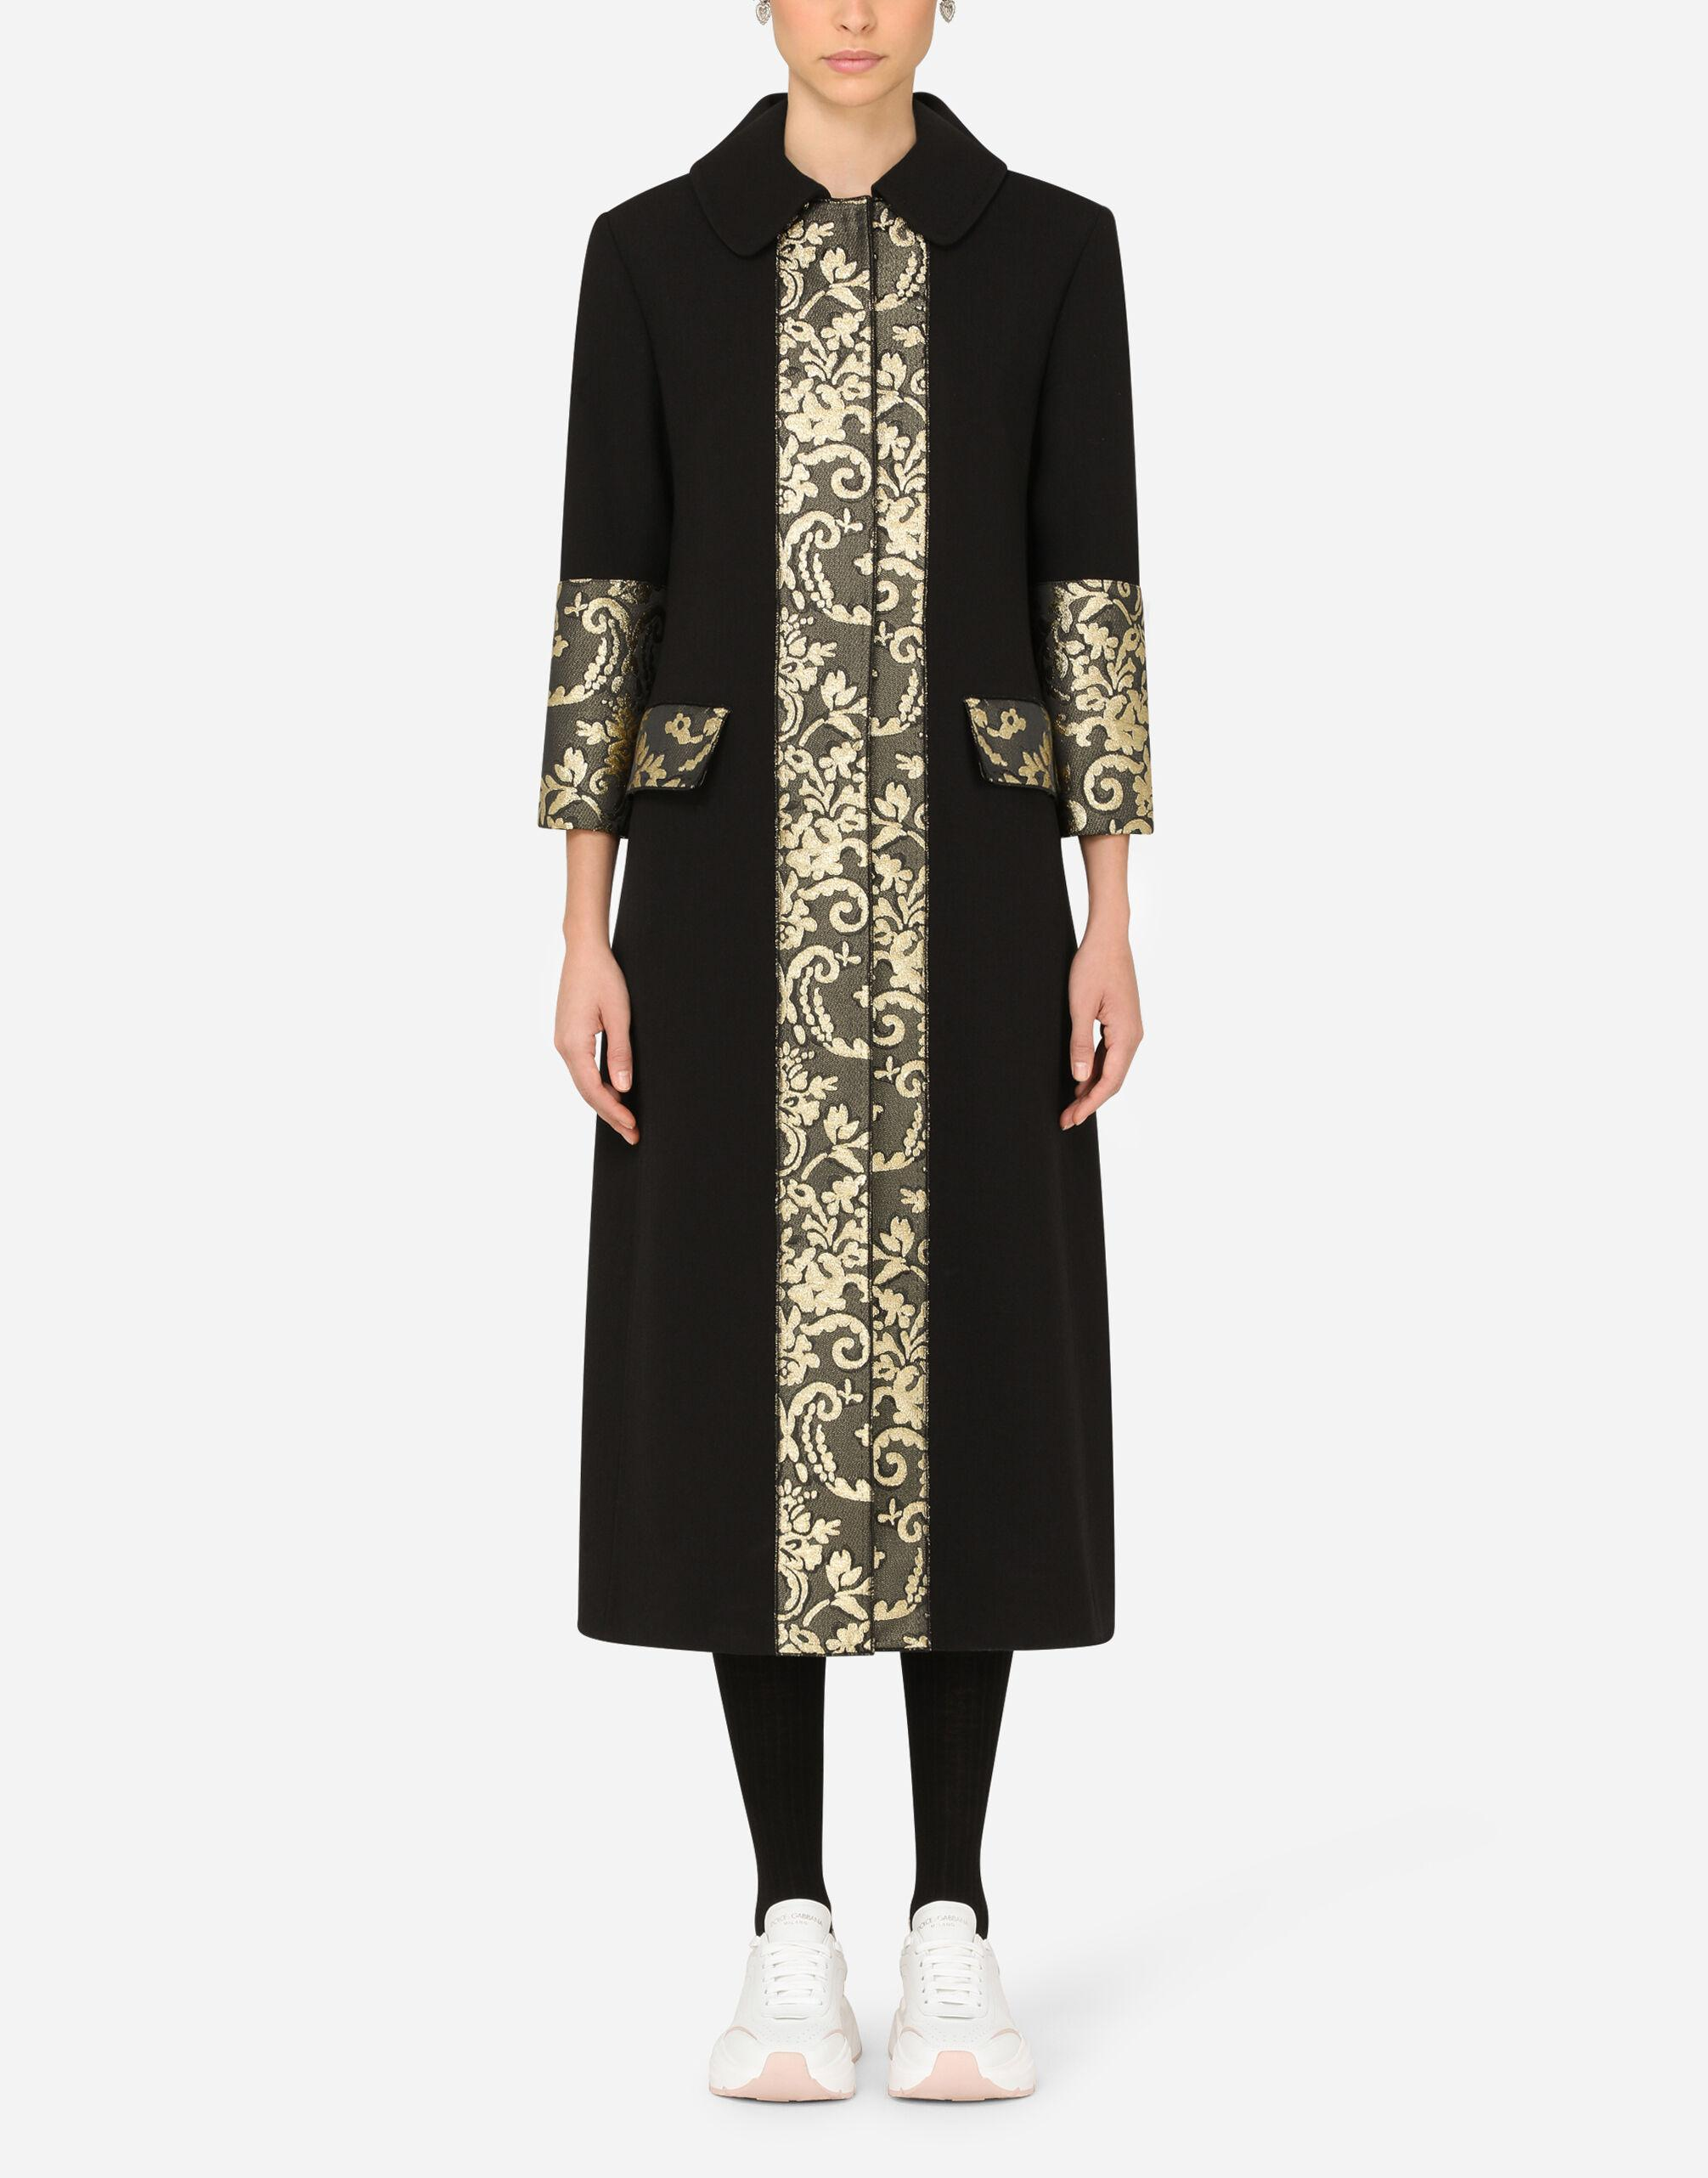 Stretch wool coat with jacquard details